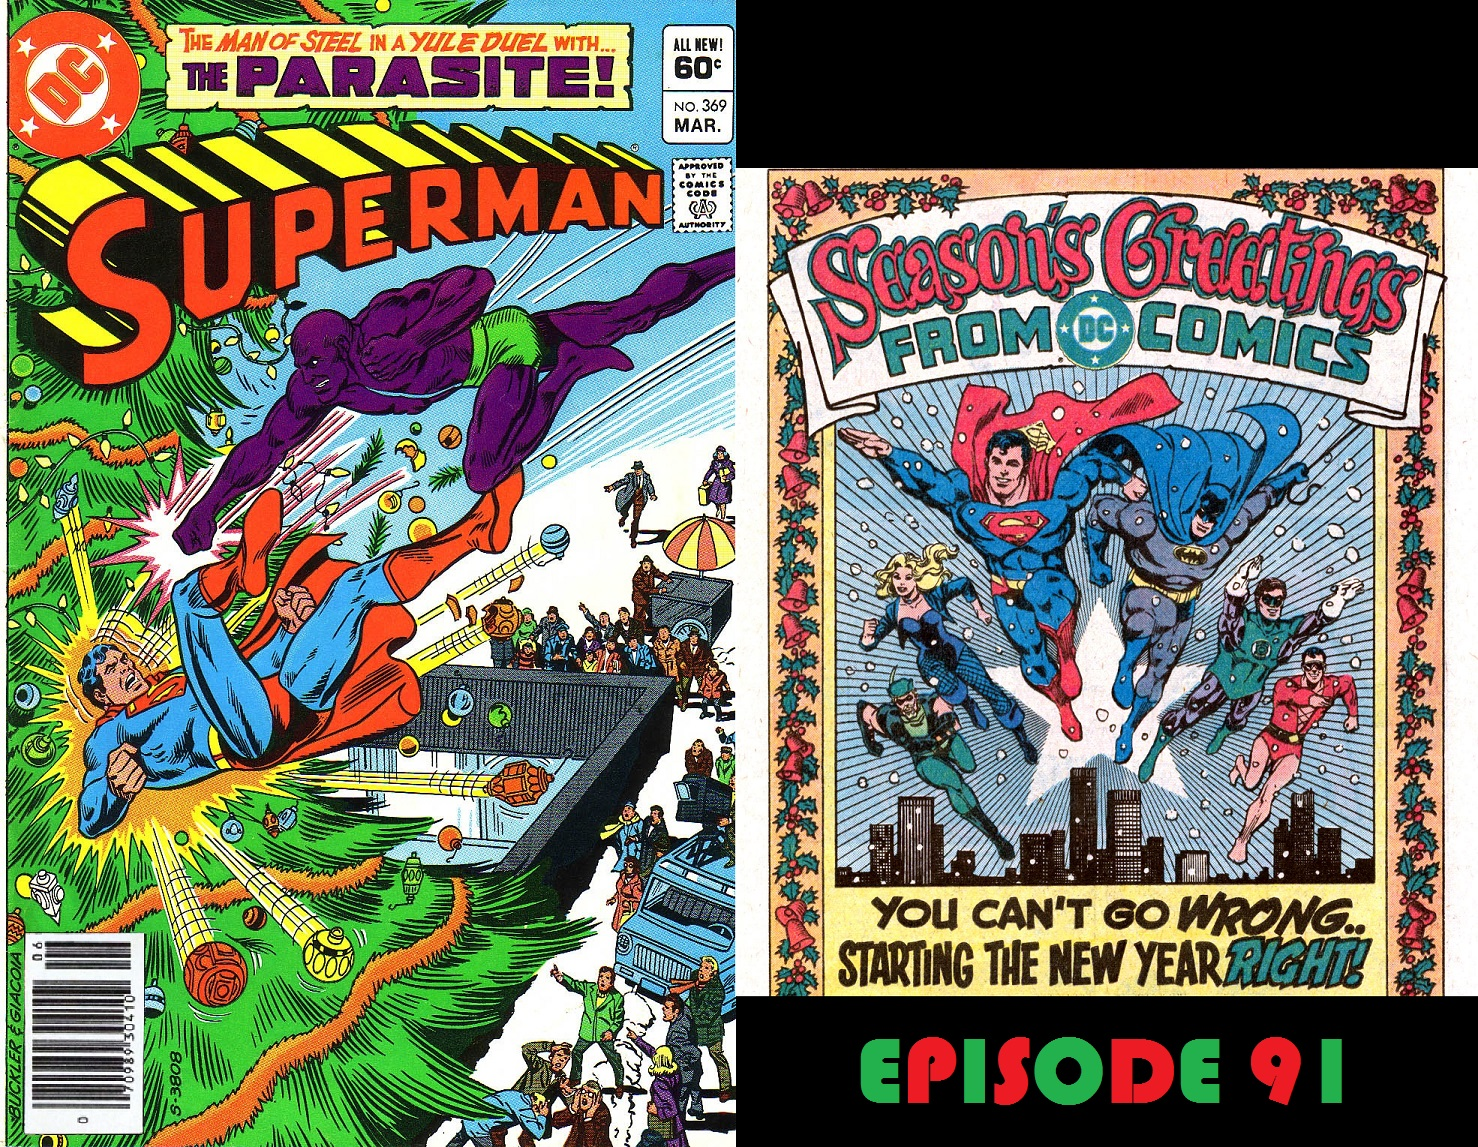 Episode 91 — Superman\'s Last Christmas | Superman in the Bronze Age